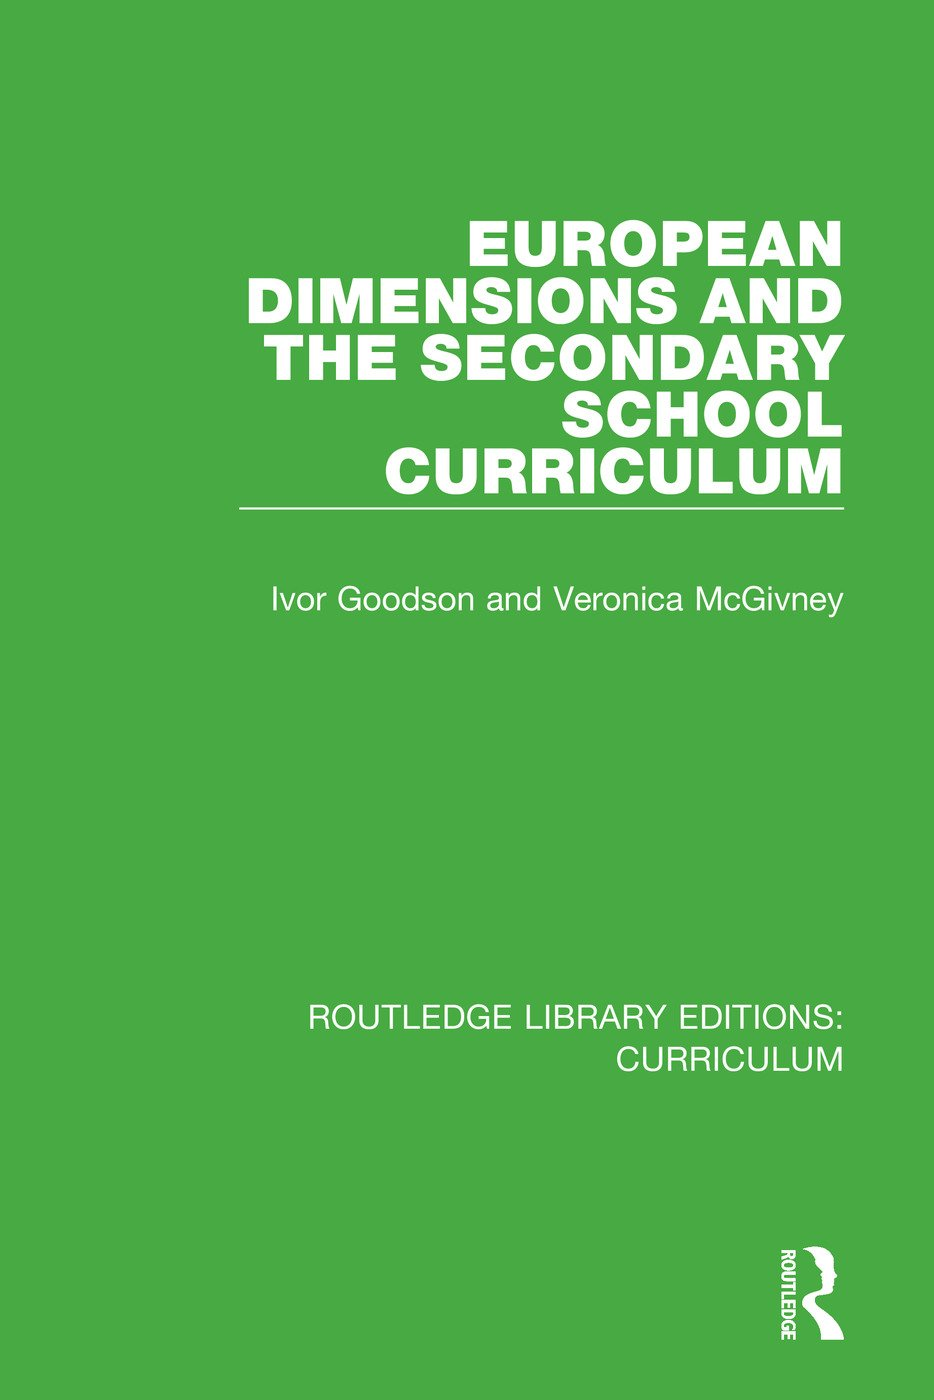 European Dimensions and the Secondary School Curriculum